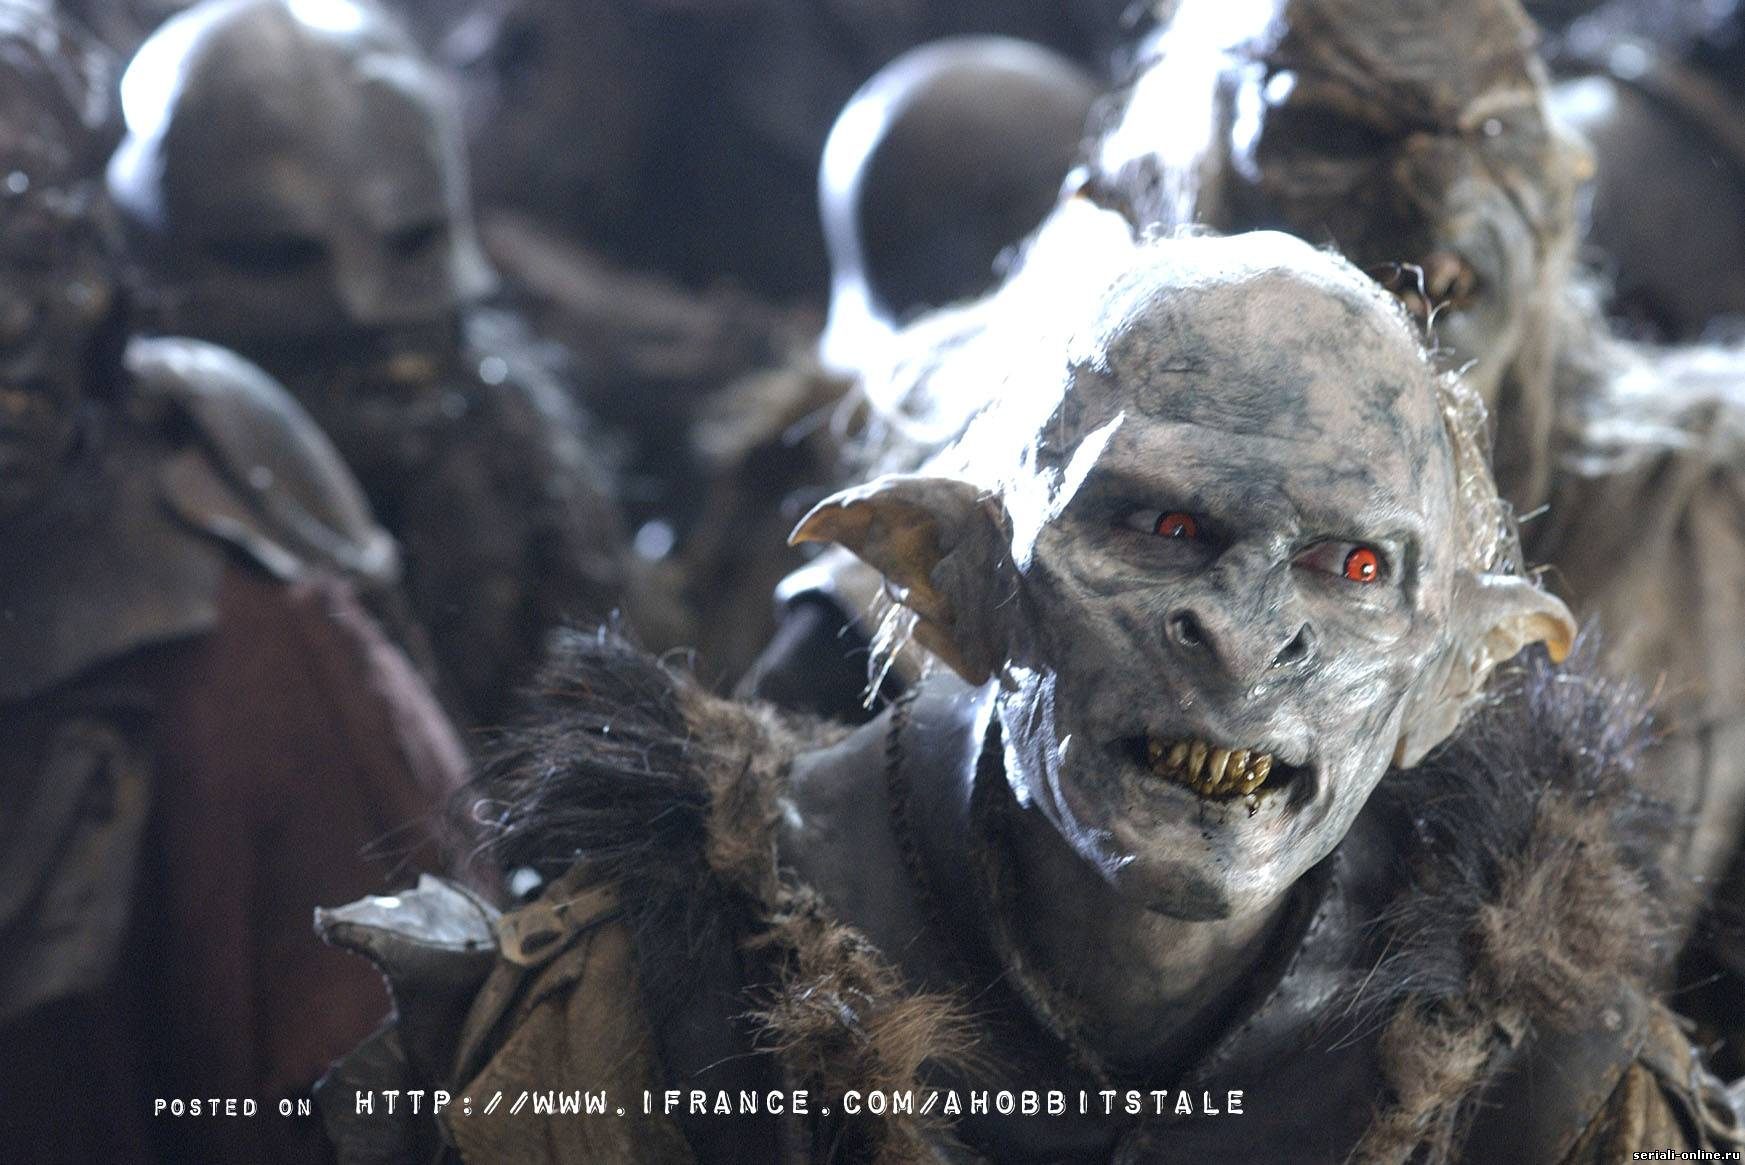 Lord of the rings orc and goblins  nackt movie